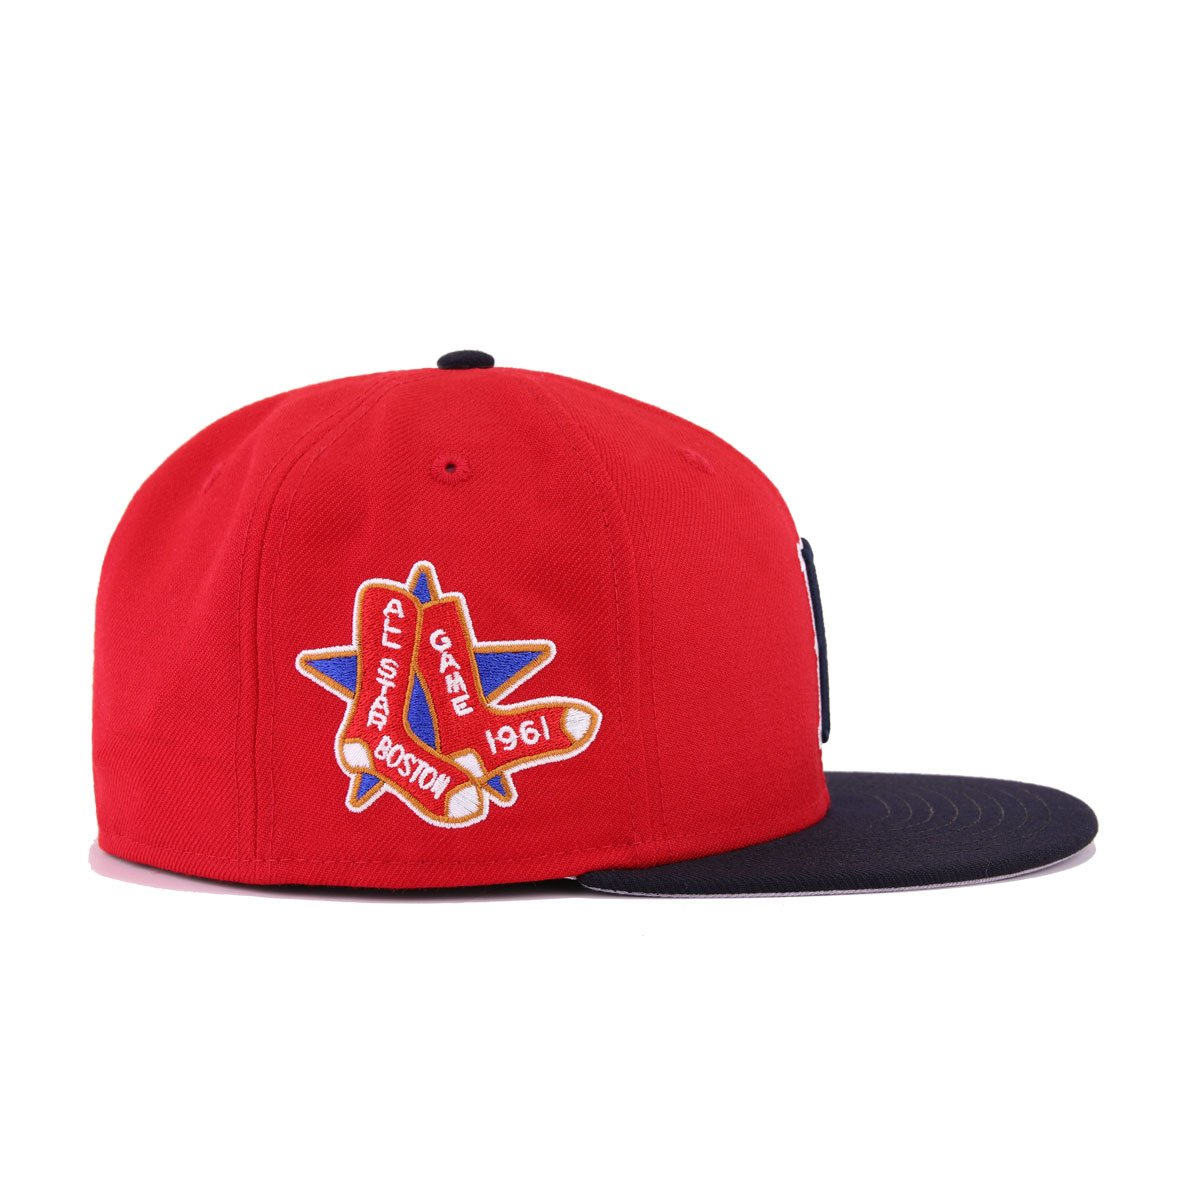 1d051fdabc1912 Boston Red Sox Scarlet Navy Cooperstown 1961 All Star Game New Era 59Fifty  Fitted